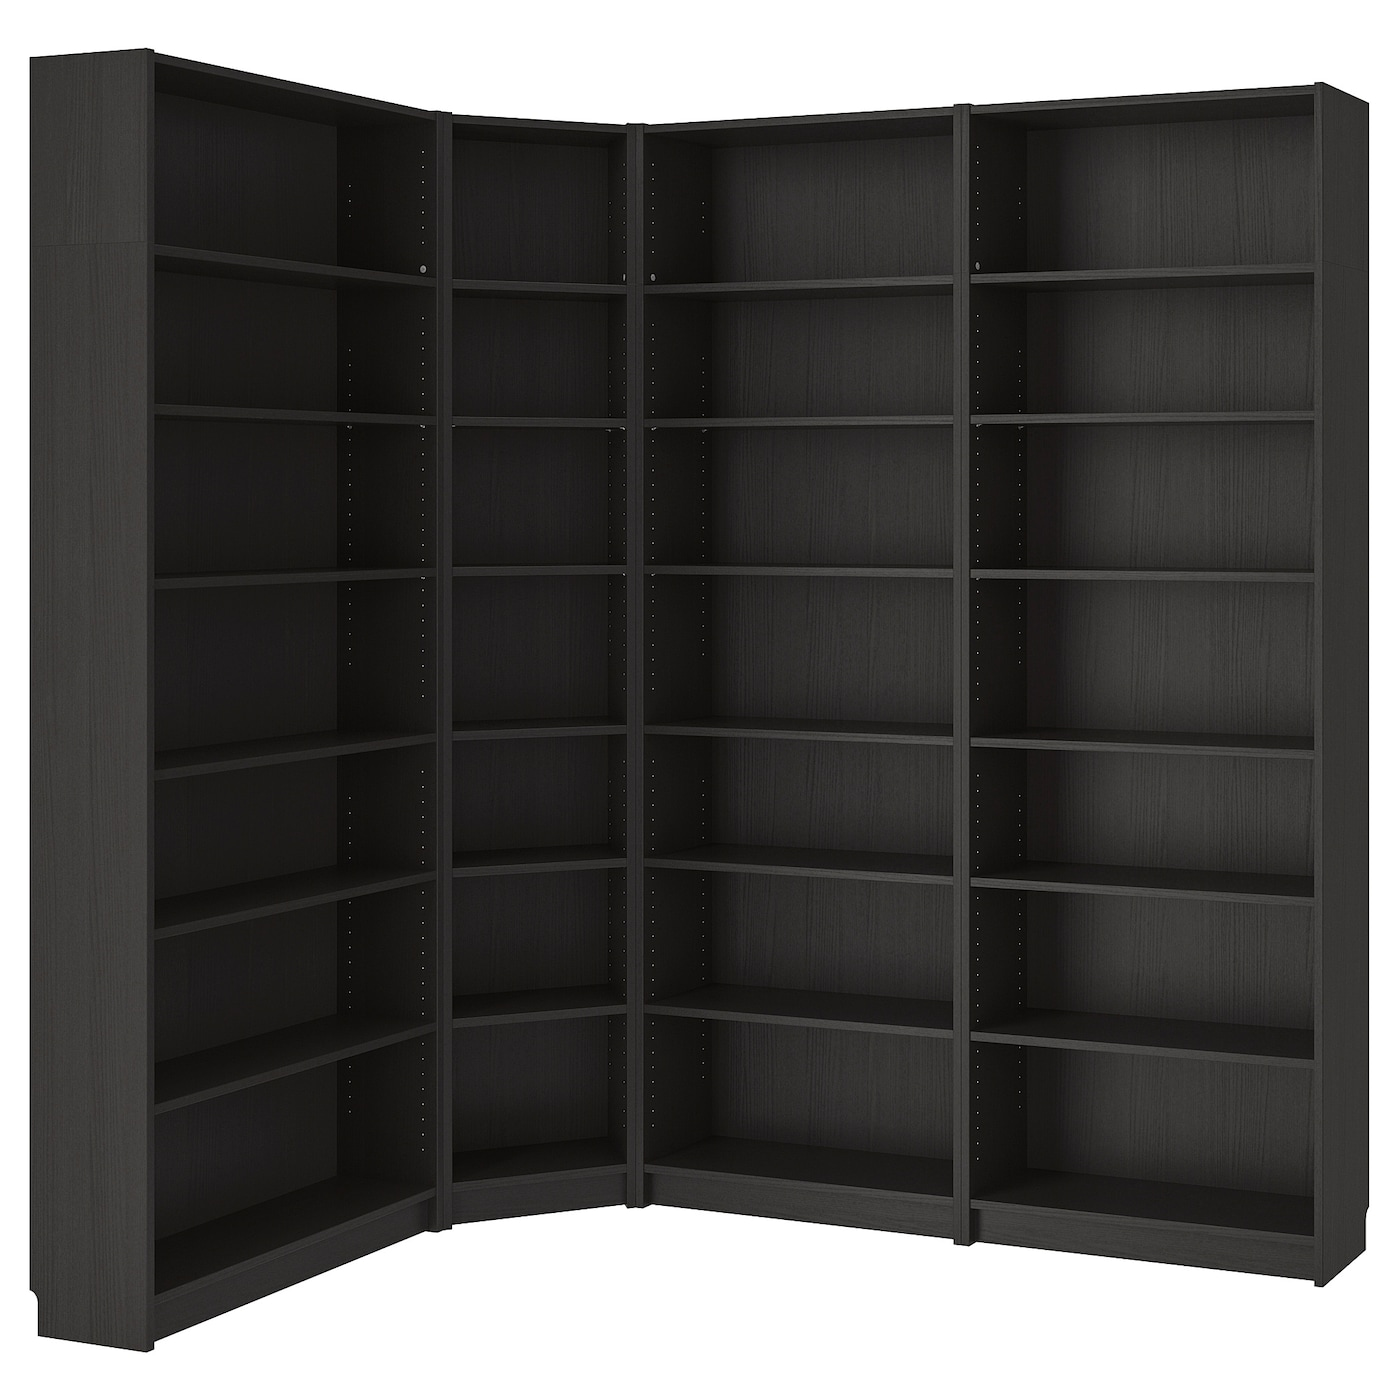 IKEA BILLY bookcase Make use of the room's maximum surface area with corner shelving.